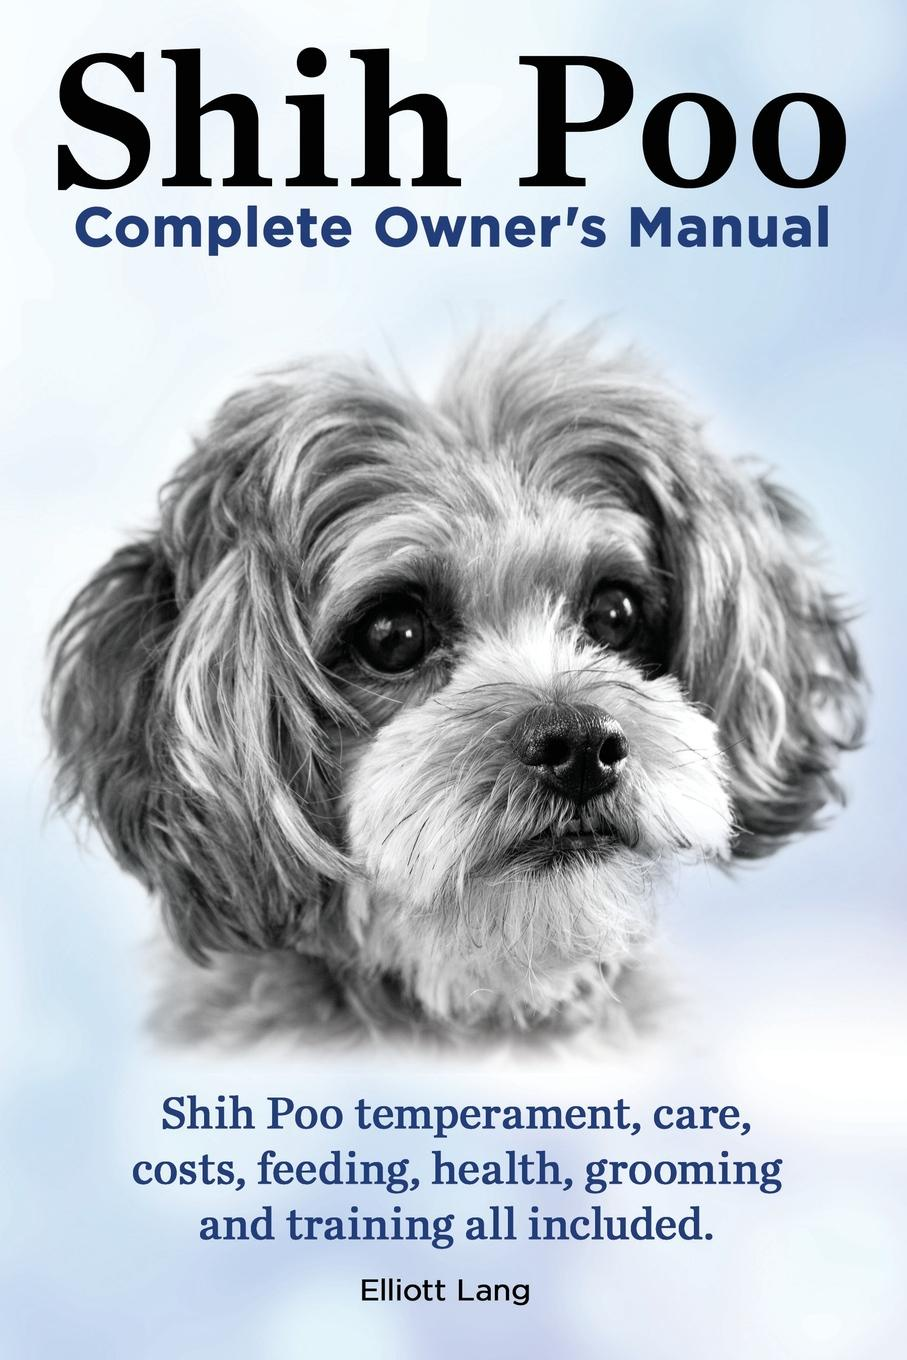 цена на Elliott Lang Shih Poo. Shihpoo Complete Owner's Manual. Shih Poo Temperament, Care, Costs, Feeding, Health, Grooming and Training All Included.